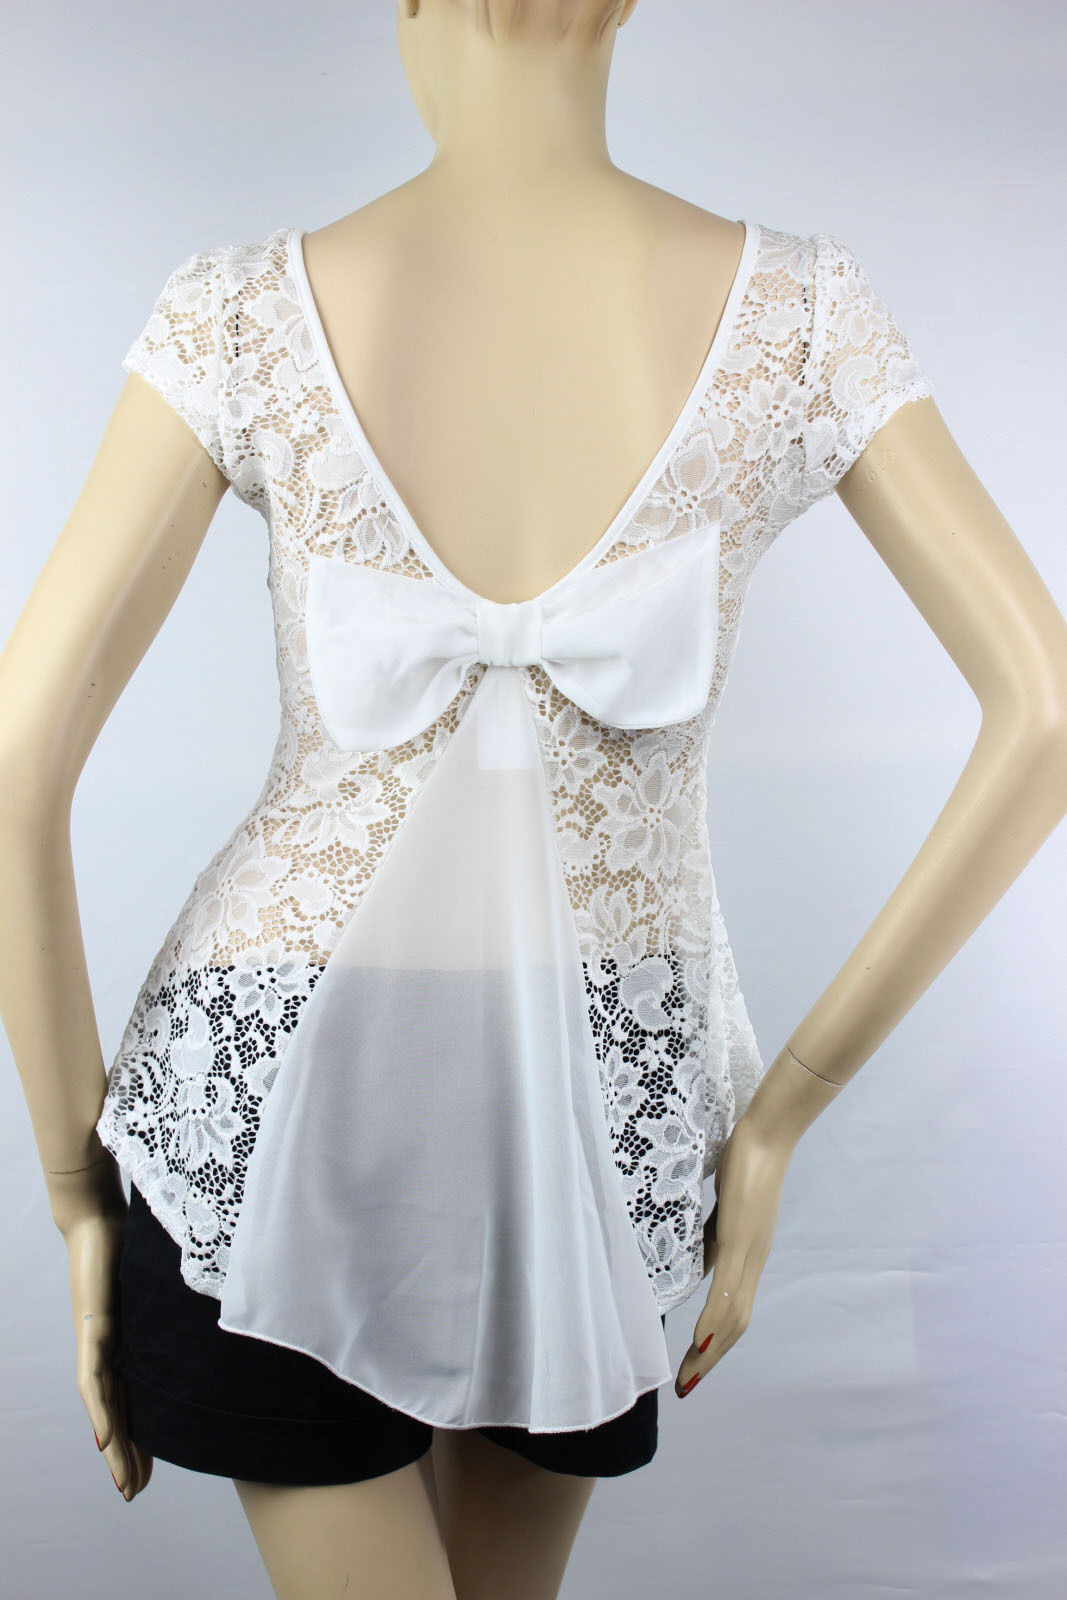 Floral Lace Peplum BLOUSE Shirts  Deep Open Back Tie Bow Layer Summer Sexy  Top